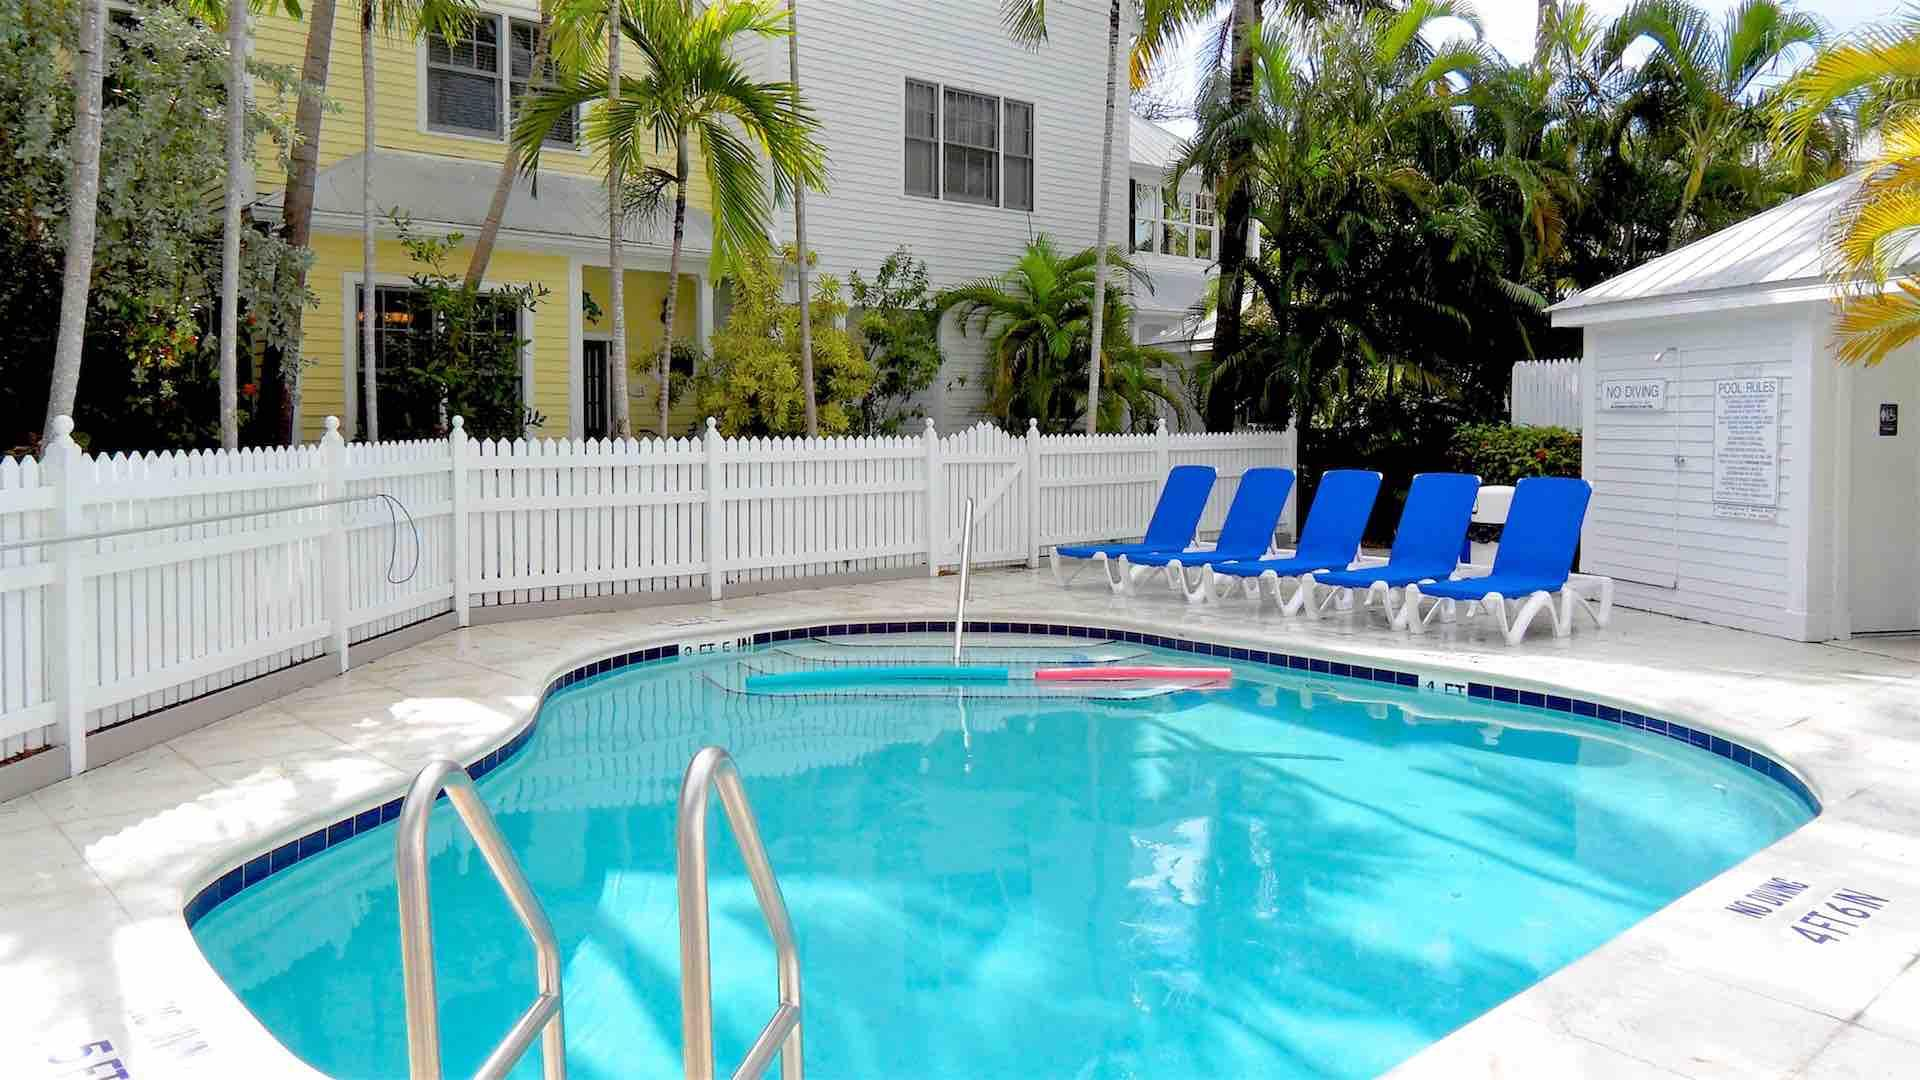 Chaise lounges surround the pool's deck and are availble for guest use...